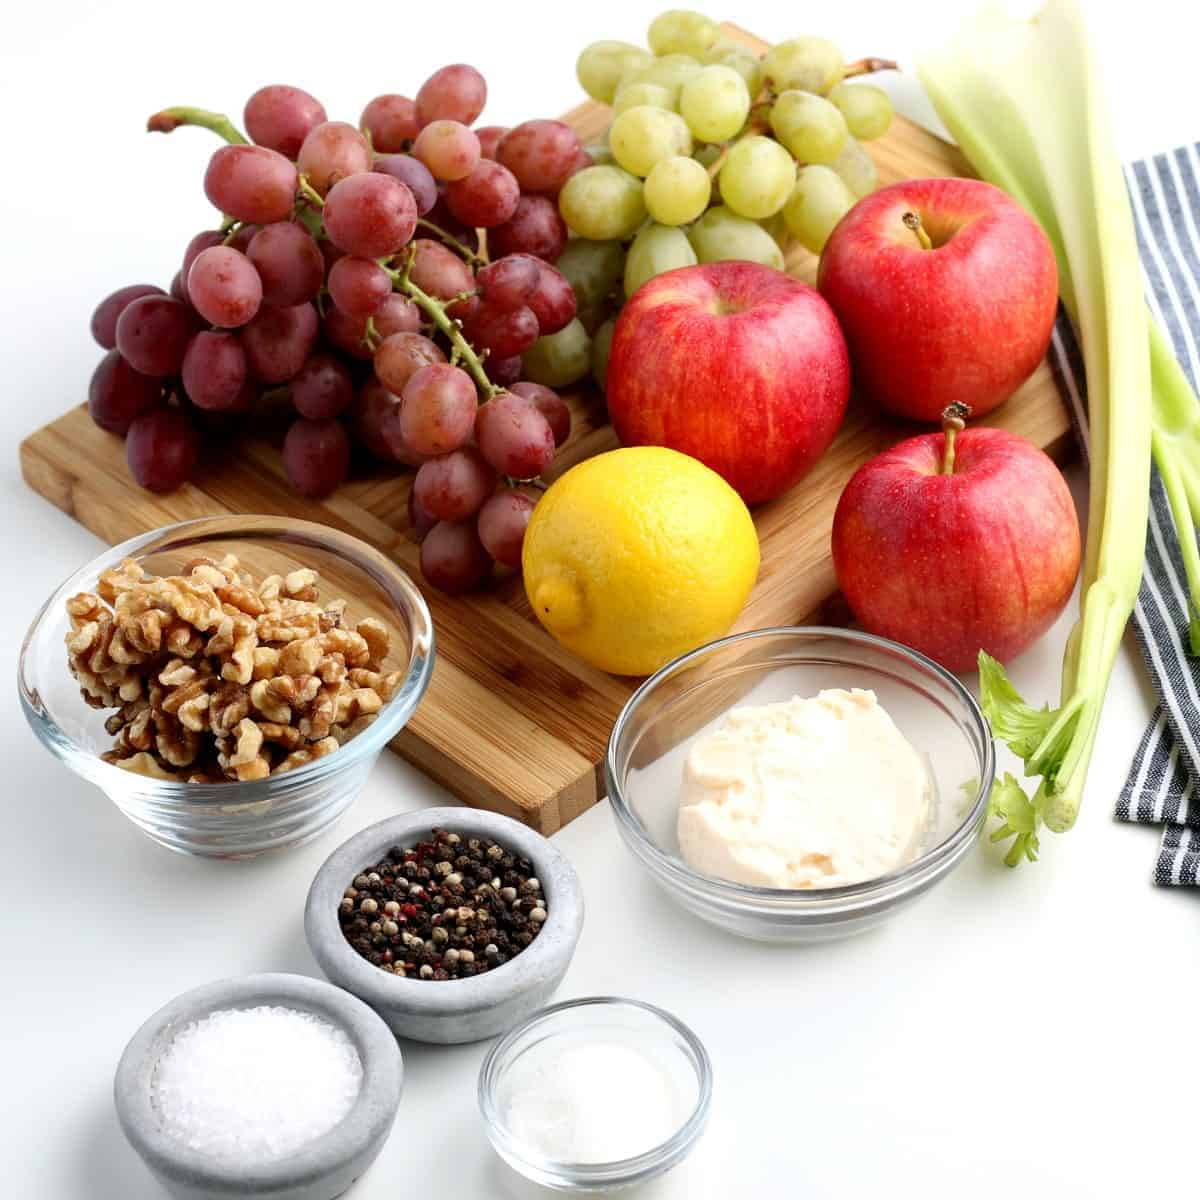 Ingredients for a fresh vegan Waldorf Salad are gathered together on a wooden board.